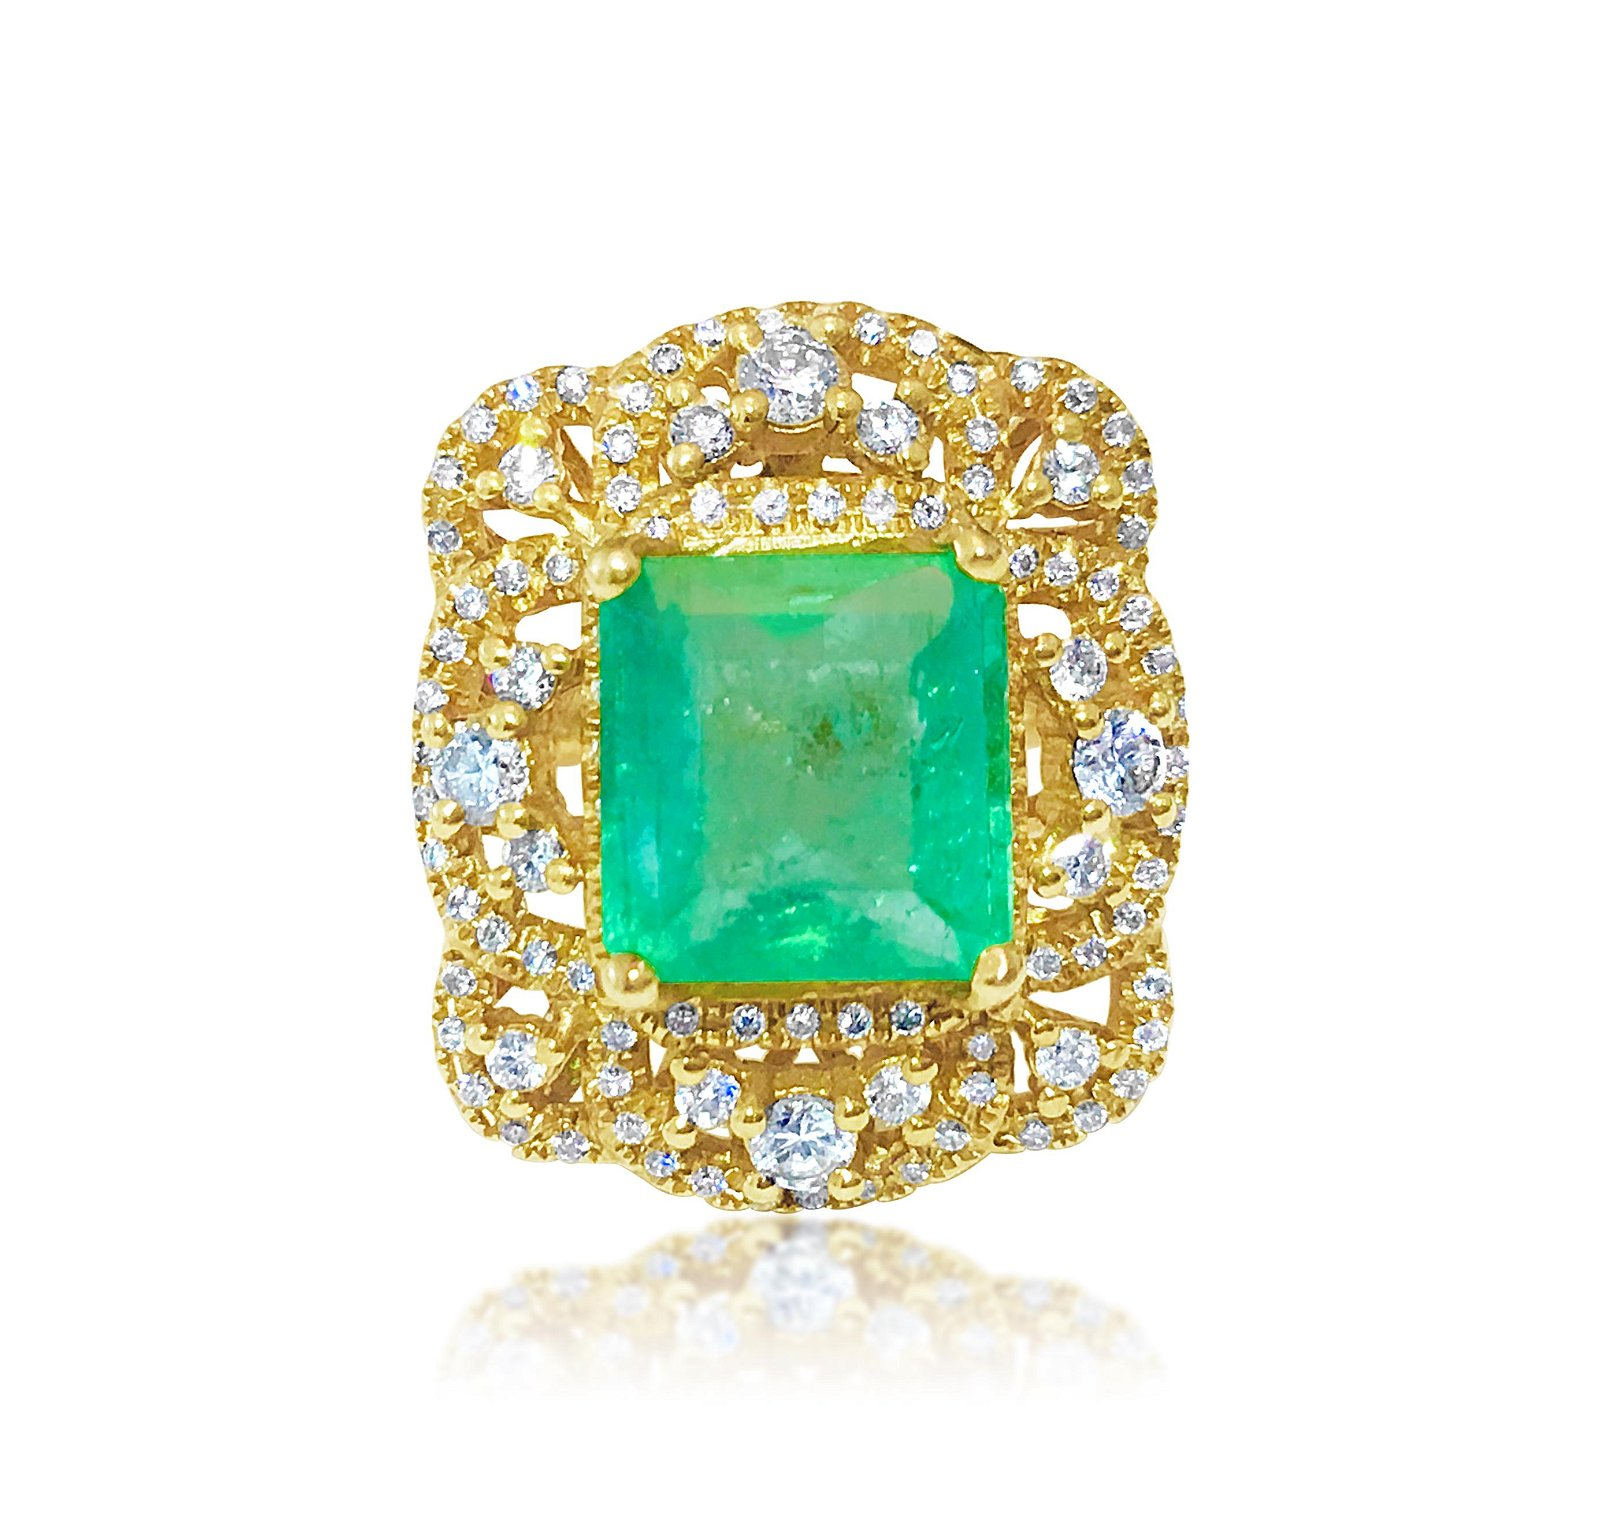 18k Gold Vintage 6 ct Emerald Diamond Cocktail Ring